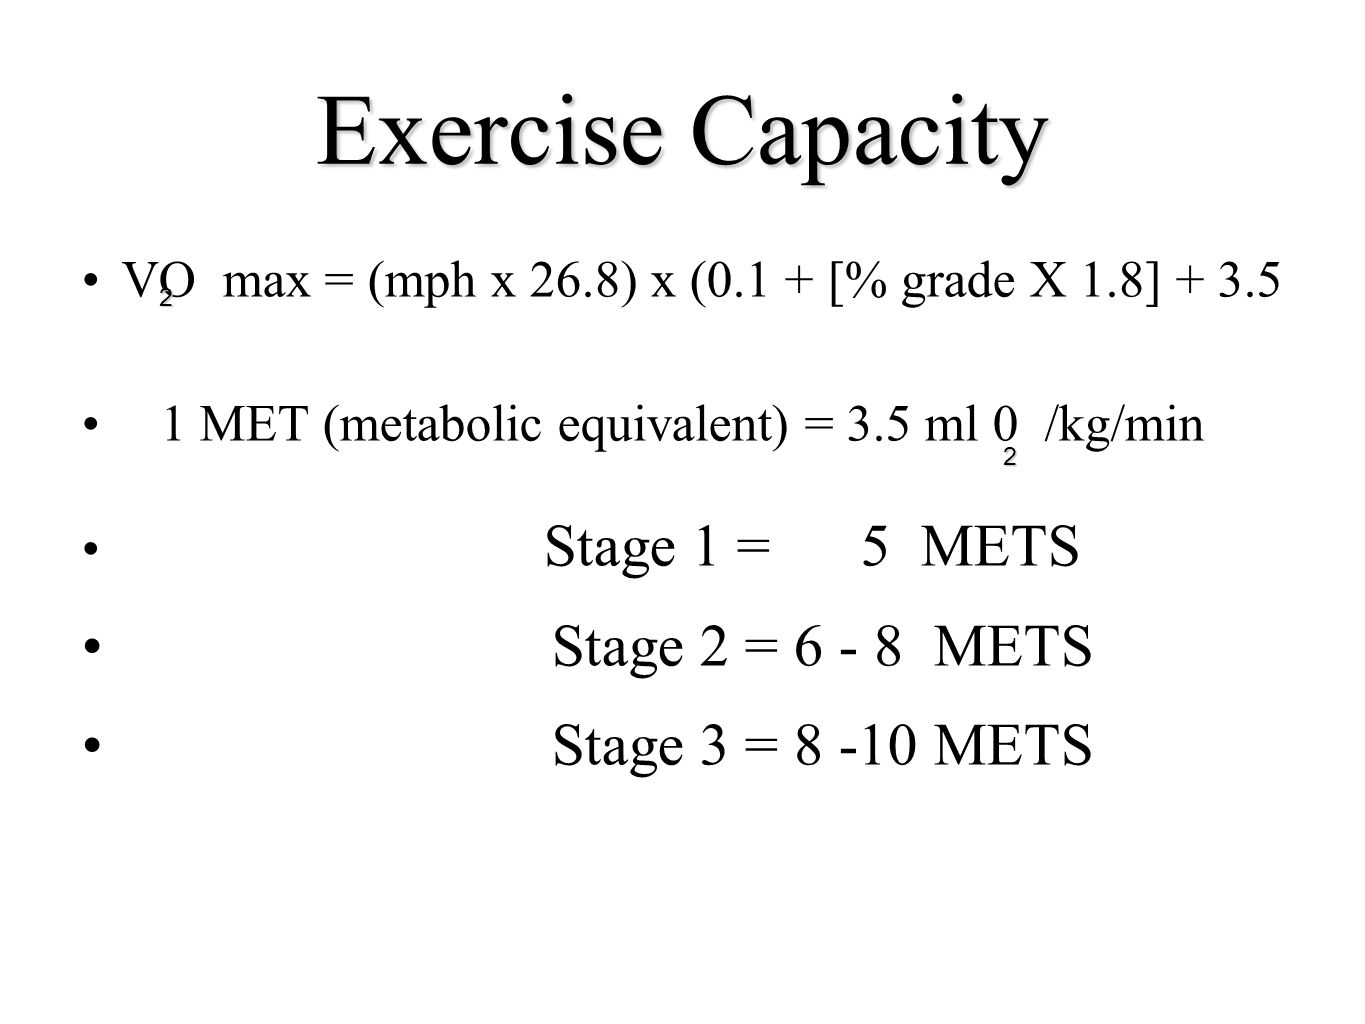 Exercise Capacity Stage 2 = 6 - 8 METS Stage 3 = 8 -10 METS